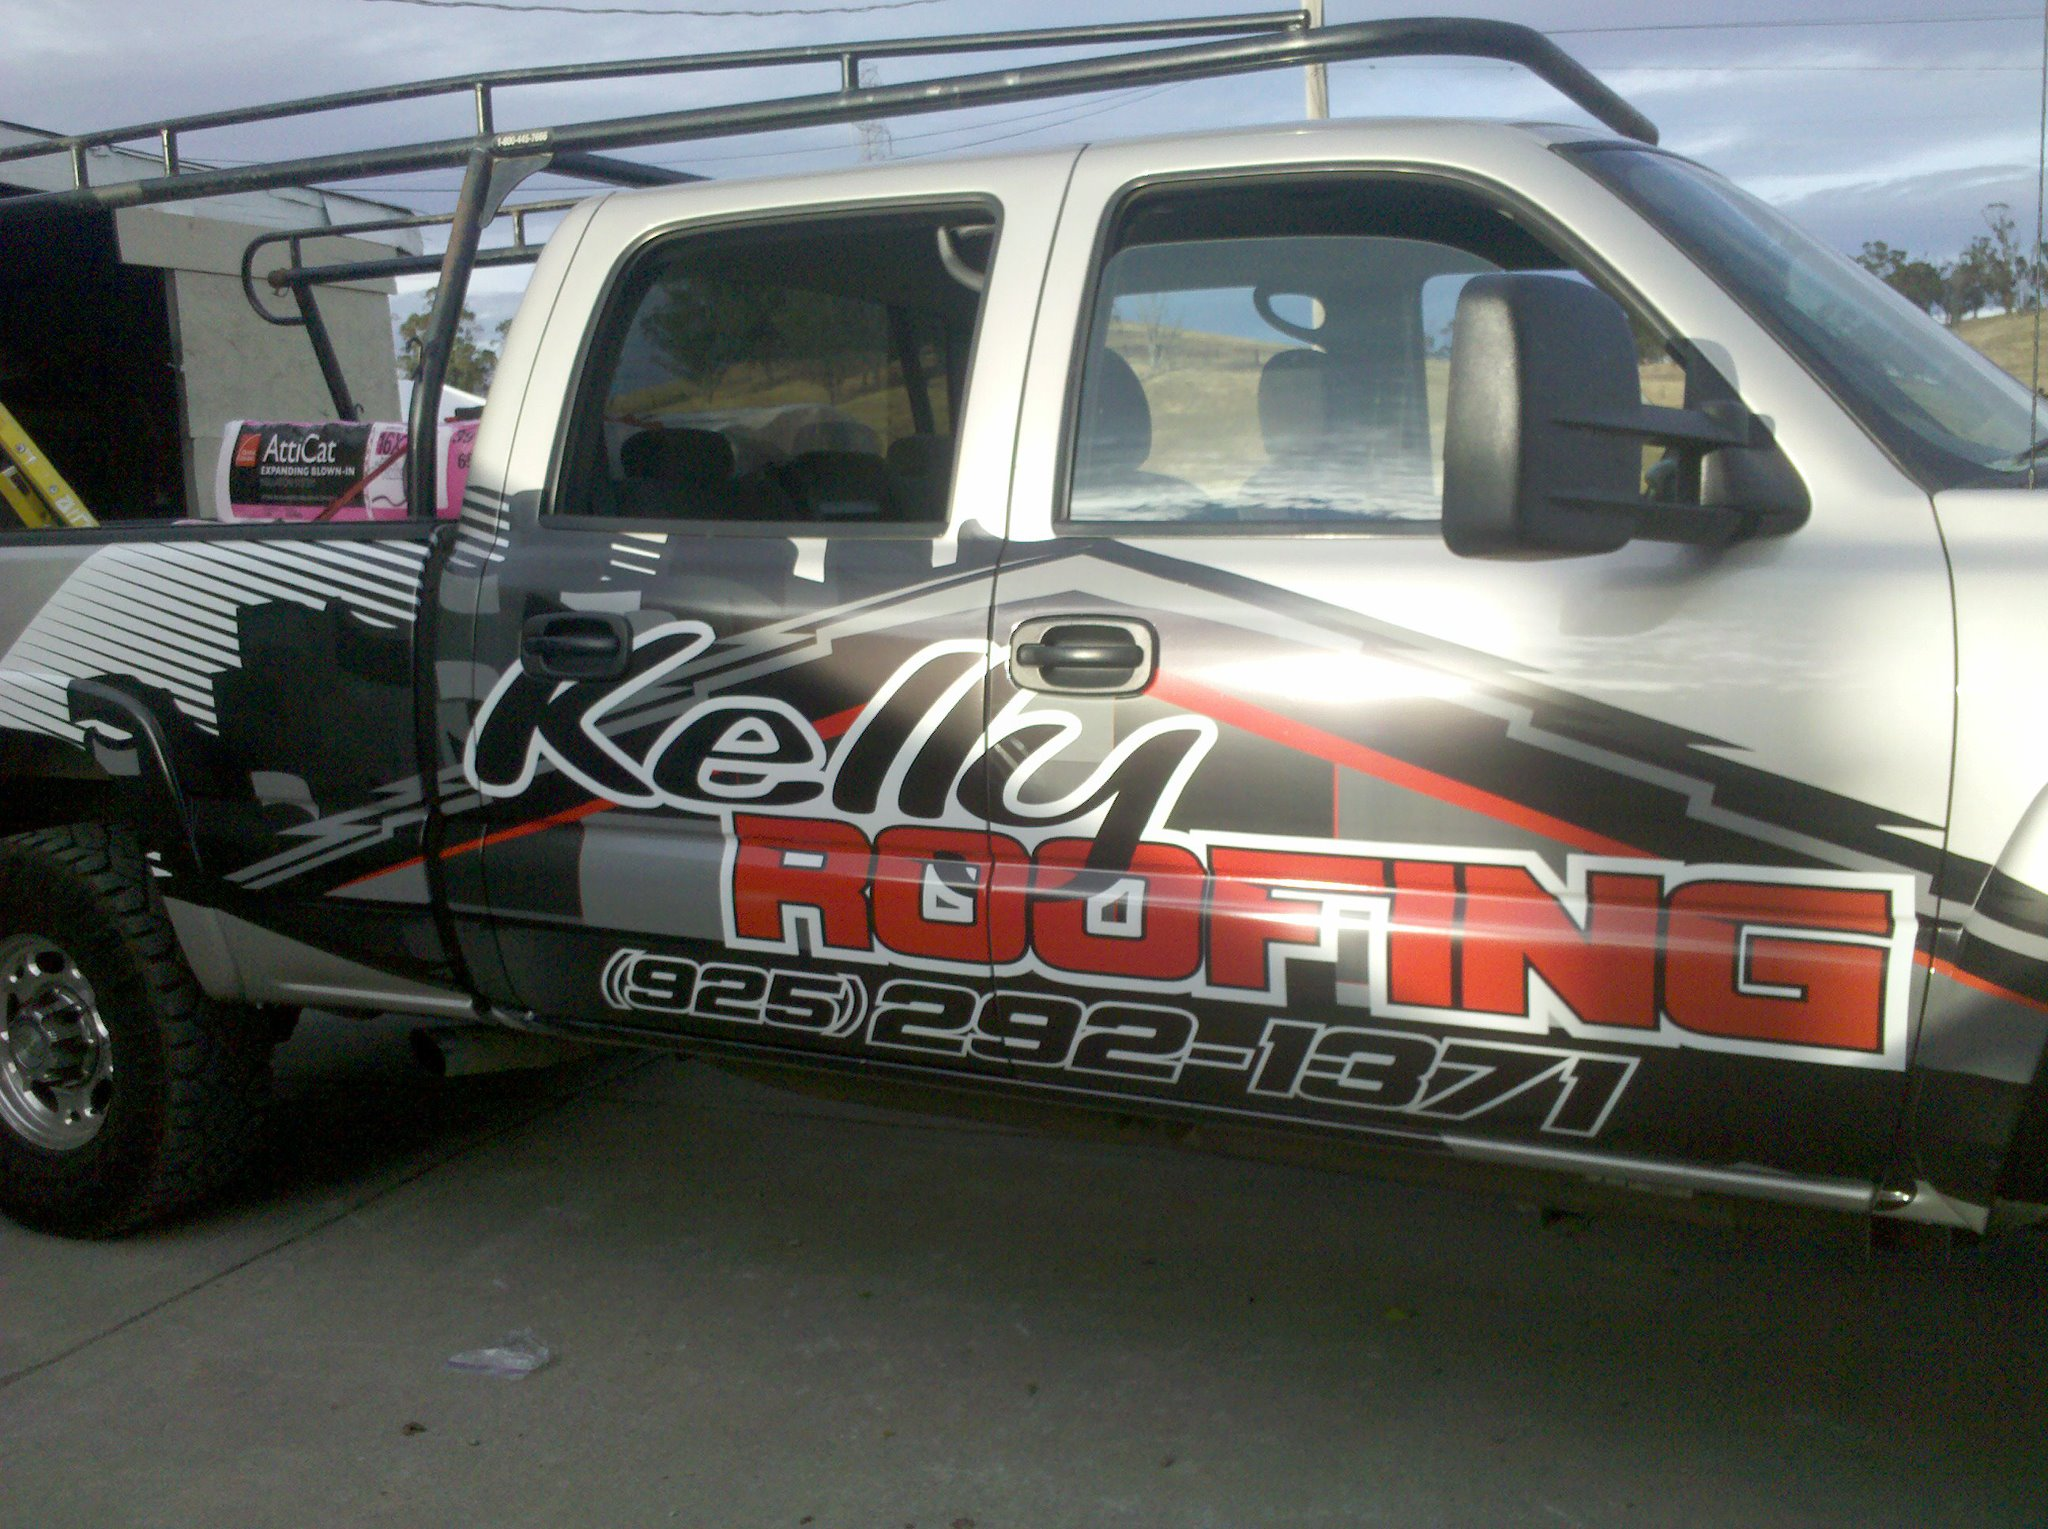 Kelly roofing used to transport commercial roofers and roofing materials